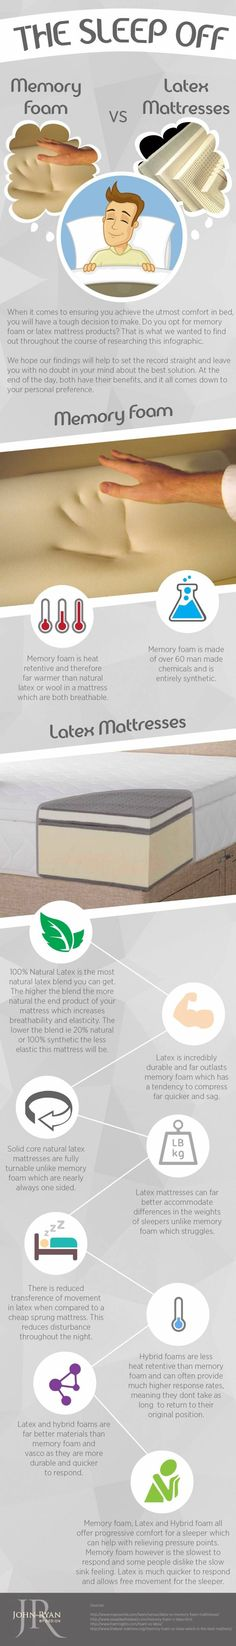 Here is your one stop shop for everything you need to know about memory foam mattresses. Memory foam is one of the most popular and well-known mattress materials but is it really all it's cracked up to be? There are plenty of better alternatives to memory foam out there and our guides are here to help you find and understand them. Memory foam should only be chosen if your budget is severely limited i.e. £300 or less. Spending any more than this, sometimes £1000 plus on a pure memory foam bed…